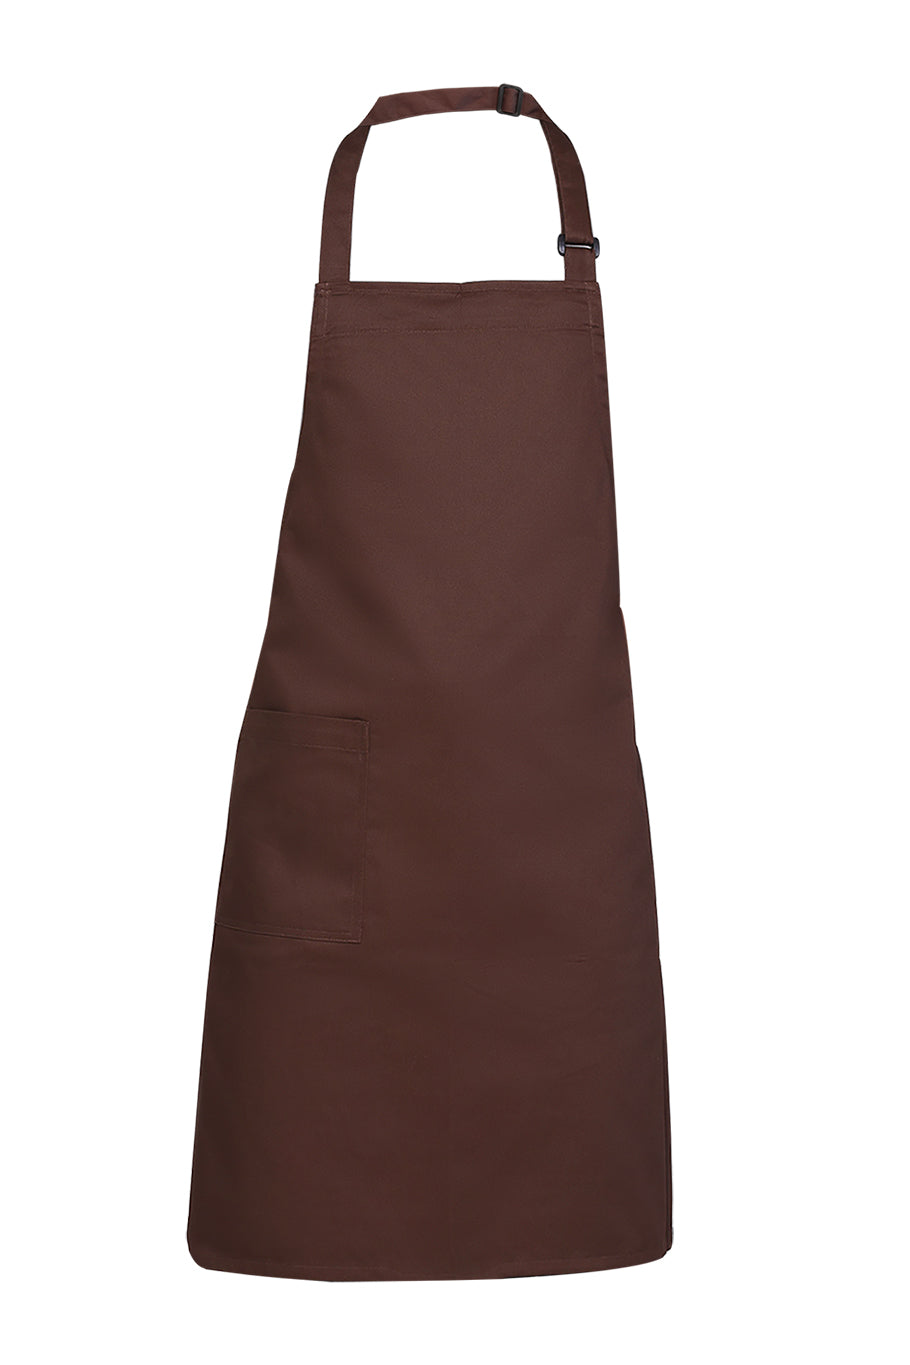 Dark Brown Bib Apron